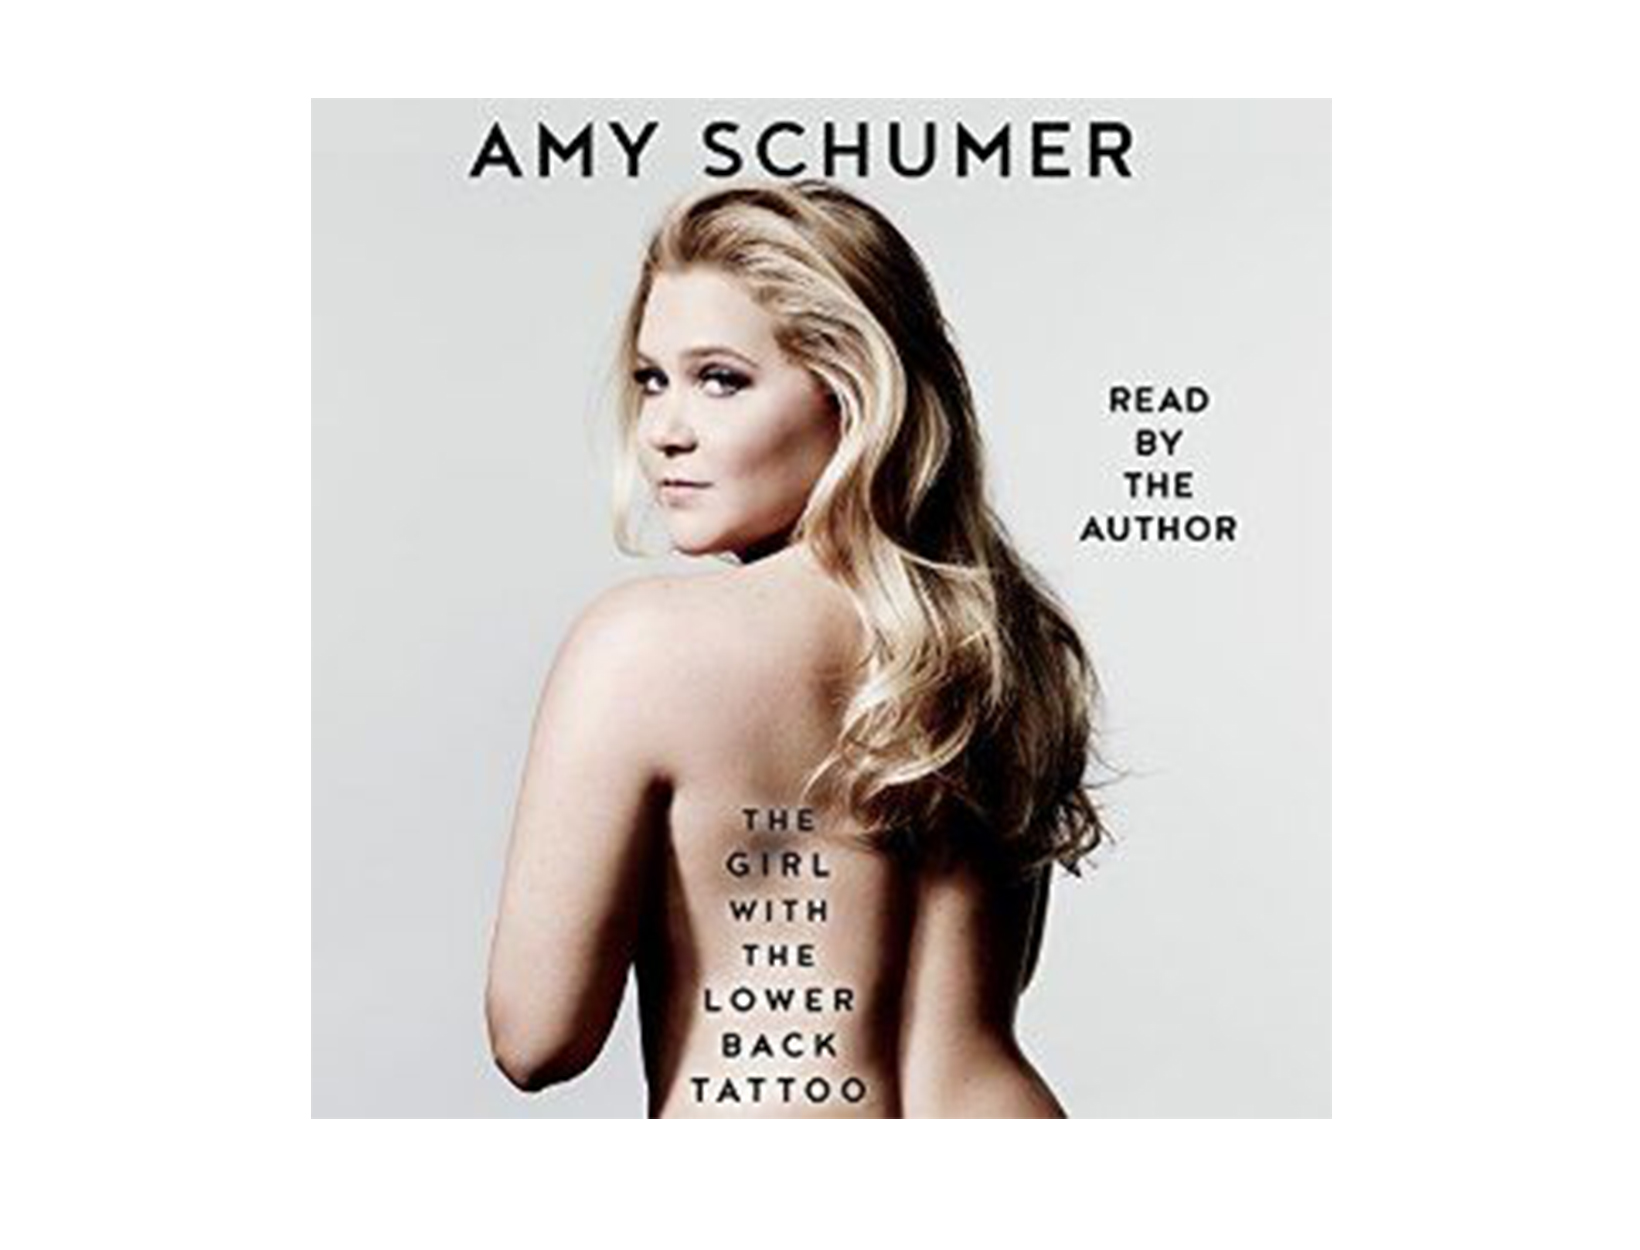 The Girl with the Lower Back Tattoo, written & read by Amy Schumer